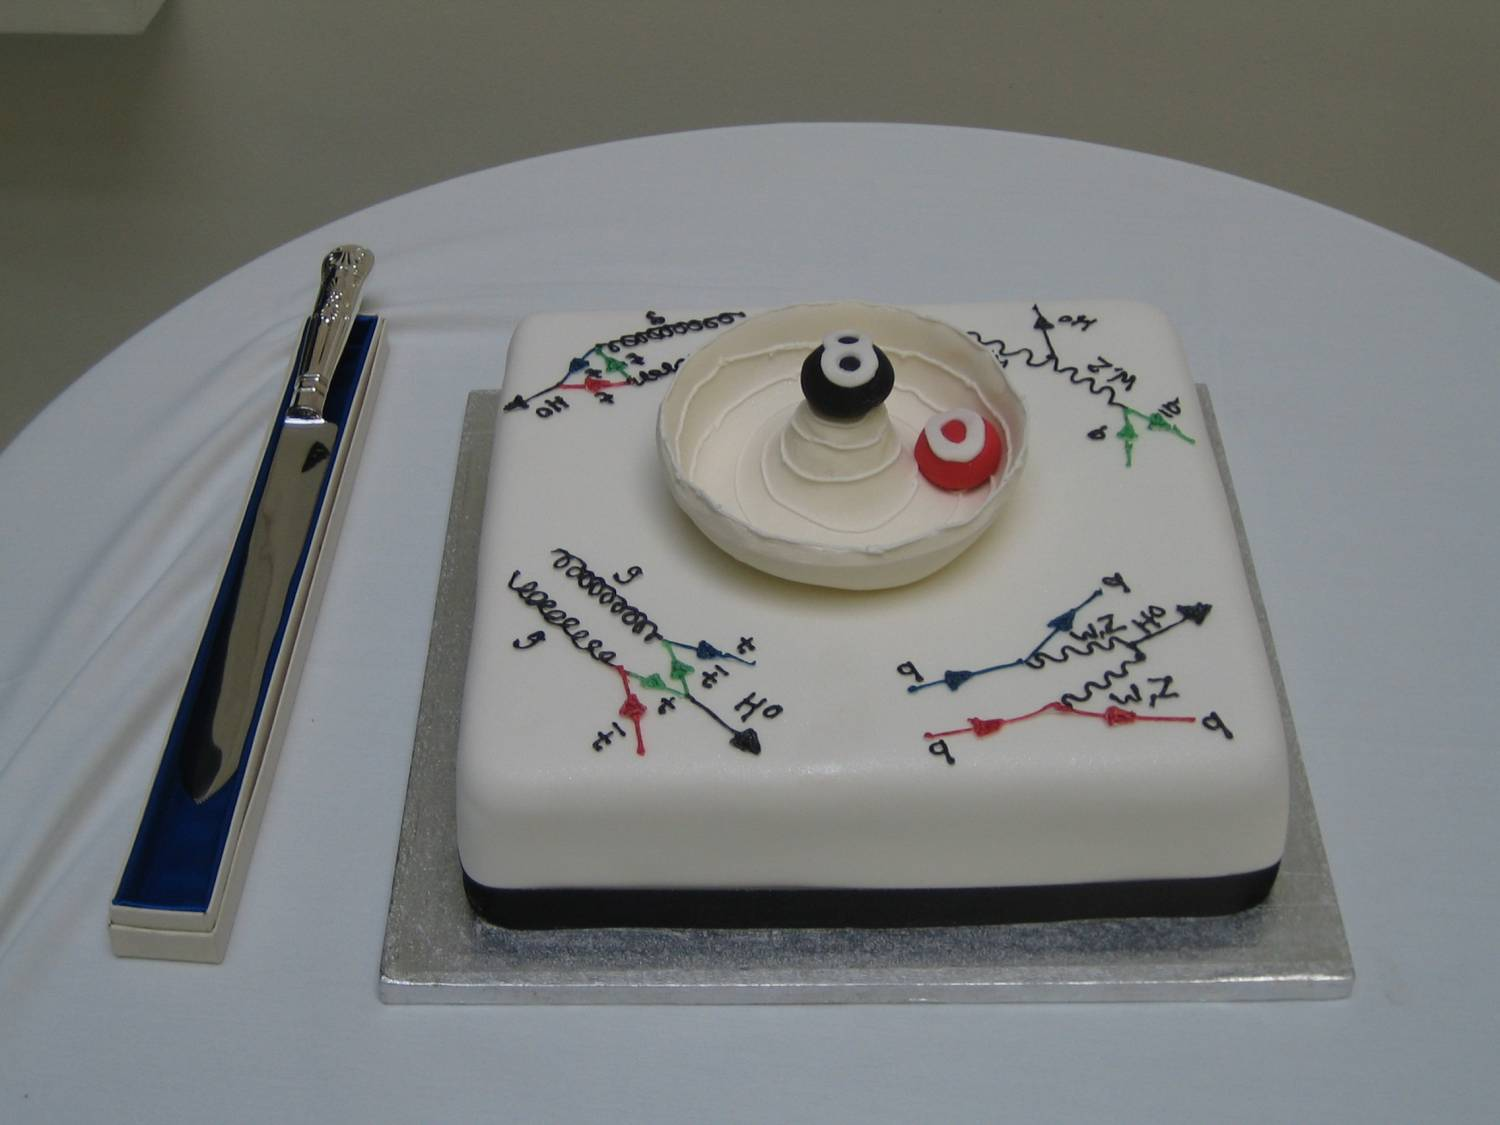 This special 80th birthday cake was presented to for Peter Higgs by his colleagues in the Particle Physics Theory & Experiments Groups. The cake was made by Have Your Cake and Eat It in Strathearn Road, Edinburgh.